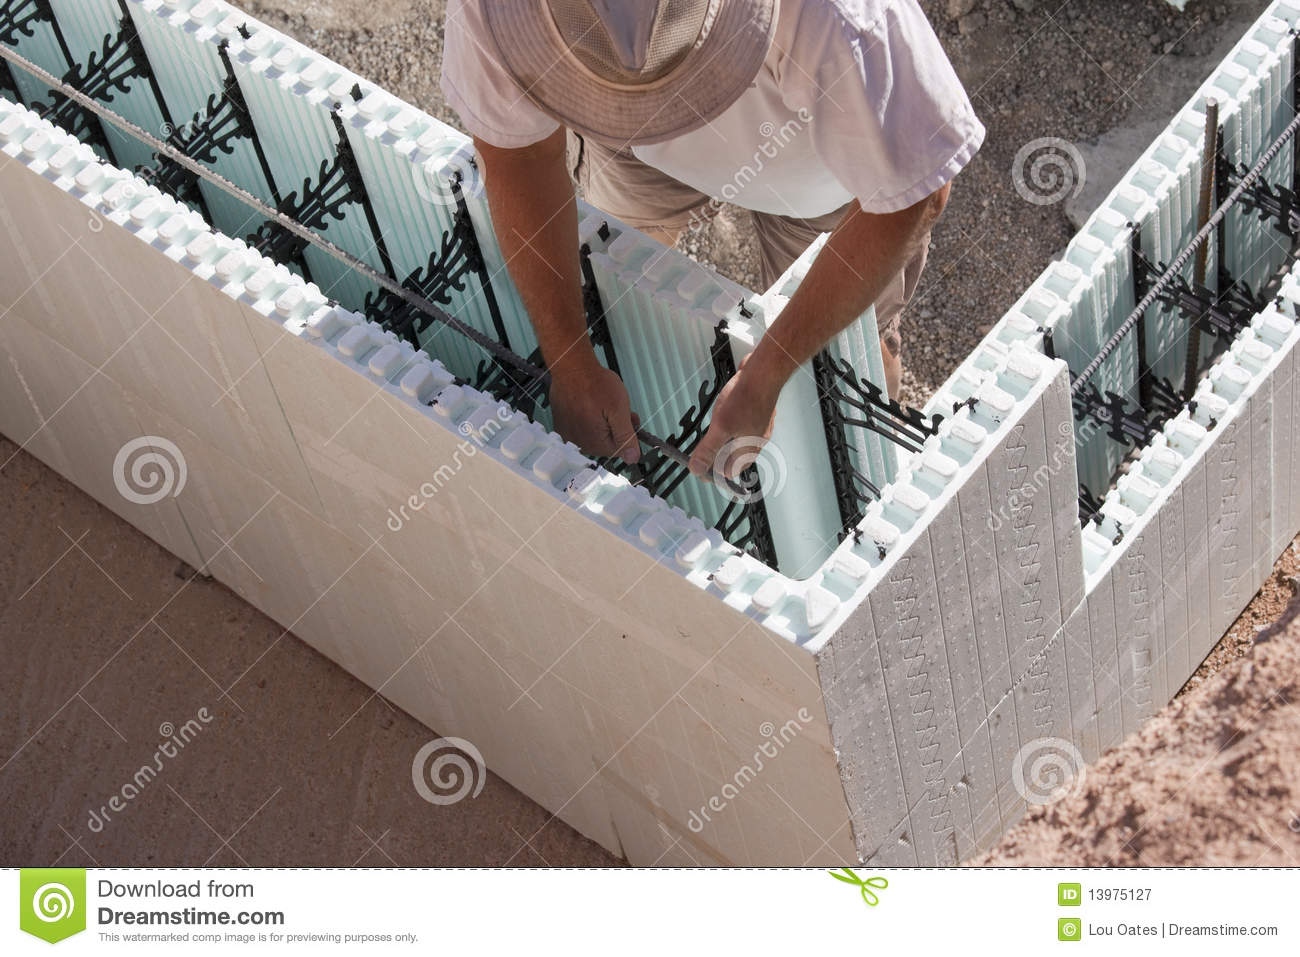 Foundation1 royalty free stock photography image 13975127 for Insulating basement floor before pouring